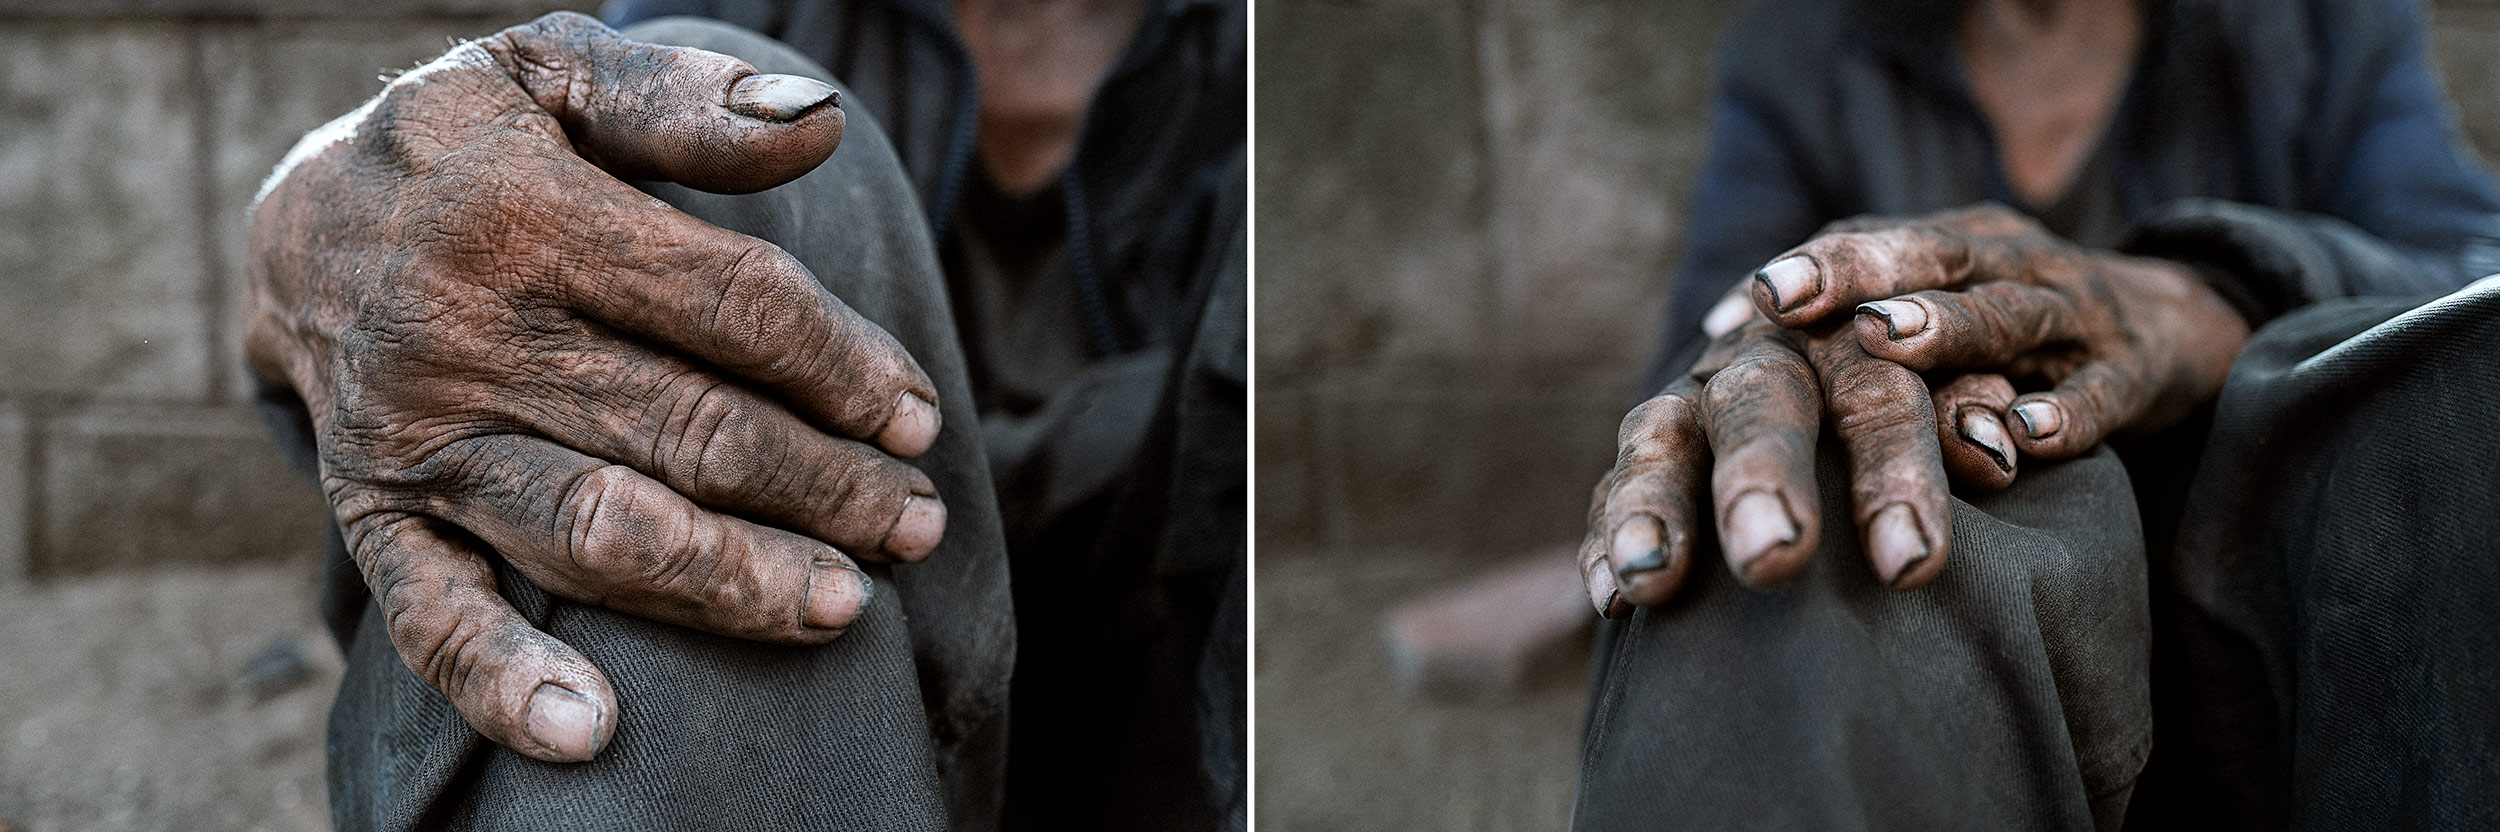 Good Boy Wolf Photographer, Philippines, homeless manilla mans hands all dirty